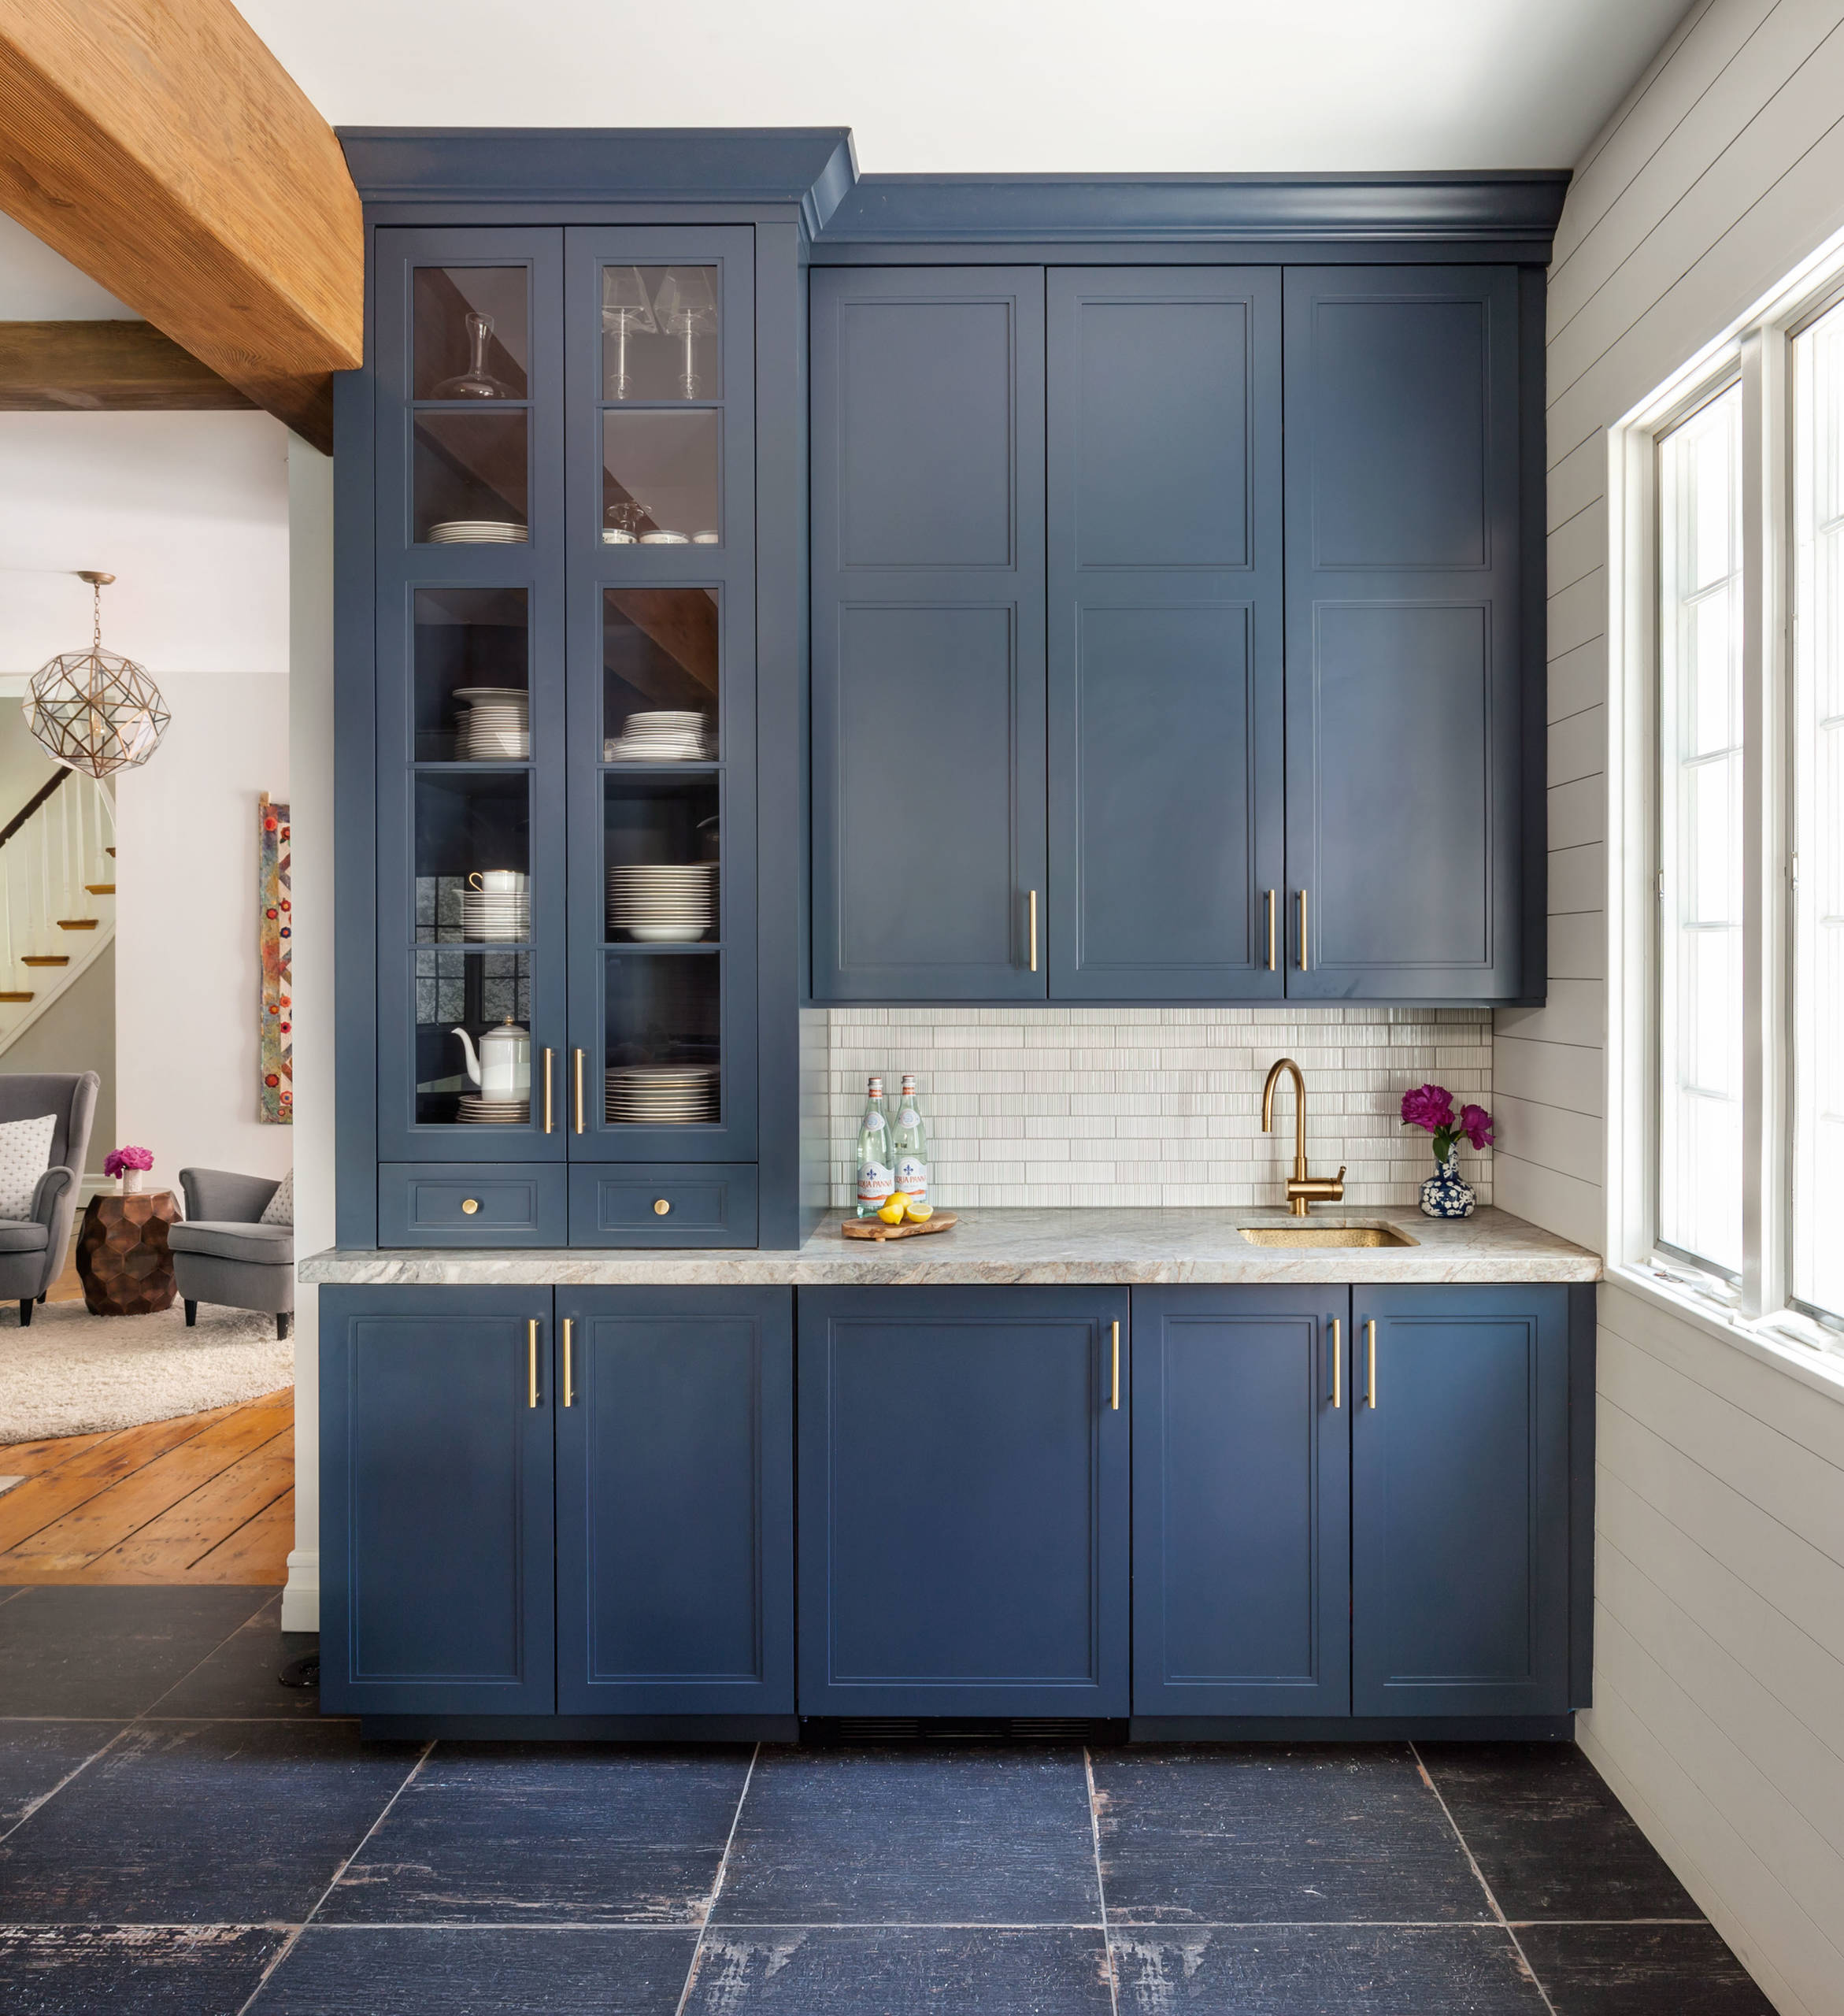 75 Beautiful Cement Tile Floor Kitchen With Blue Cabinets Pictures Ideas December 2020 Houzz